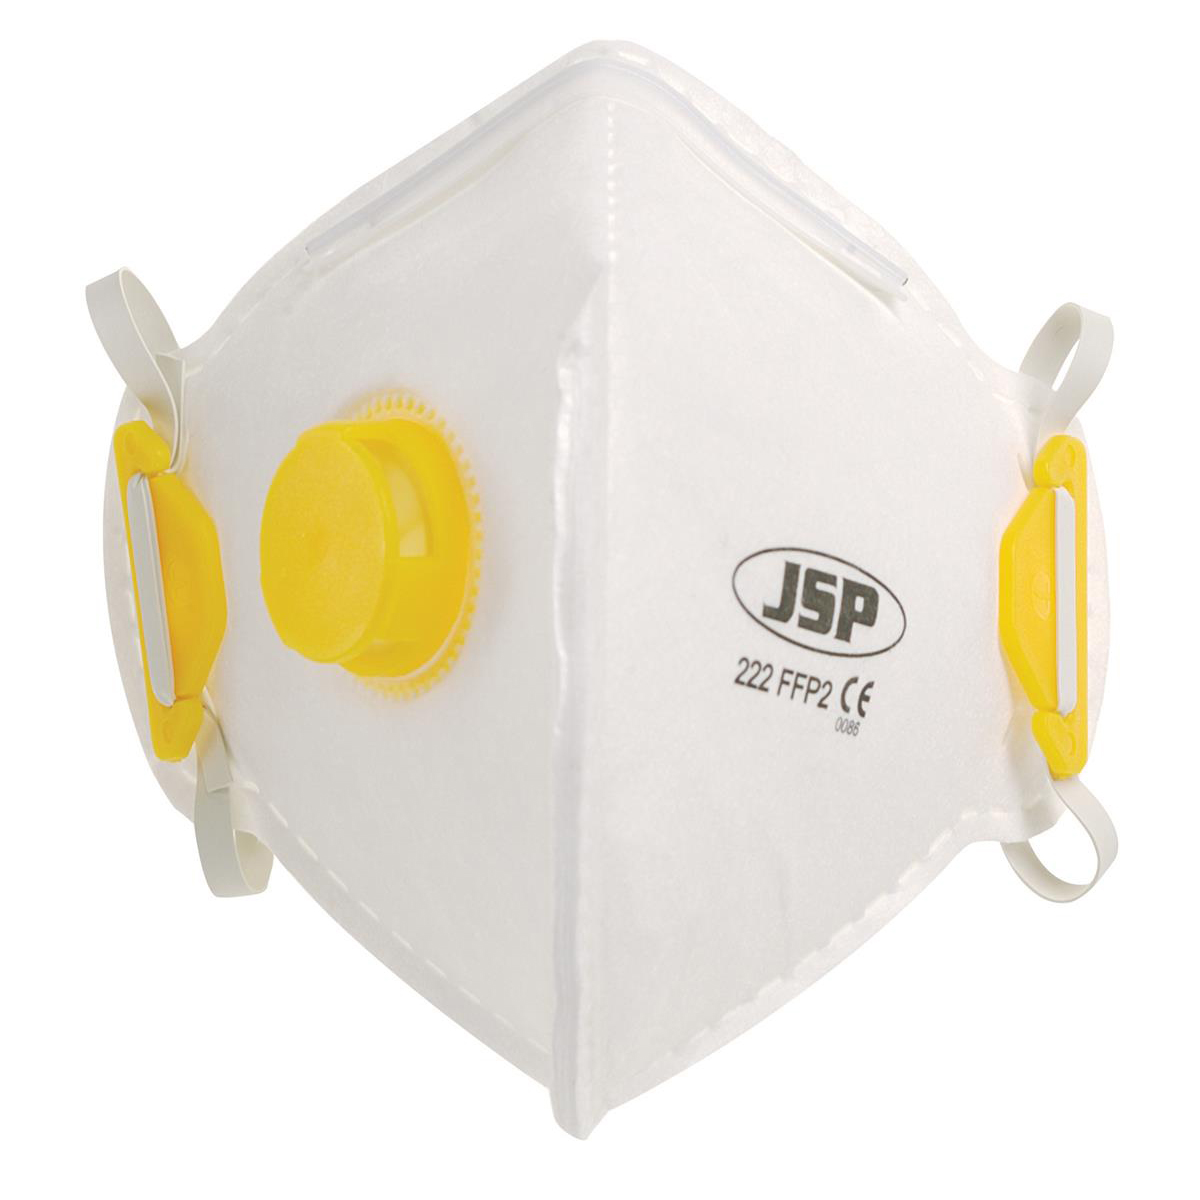 JSP Disposable Mask Valved Fold-flat FFP2 Class 2 EN149:2001 & A1:2009 Ref BEB120-101-000 Pack 10